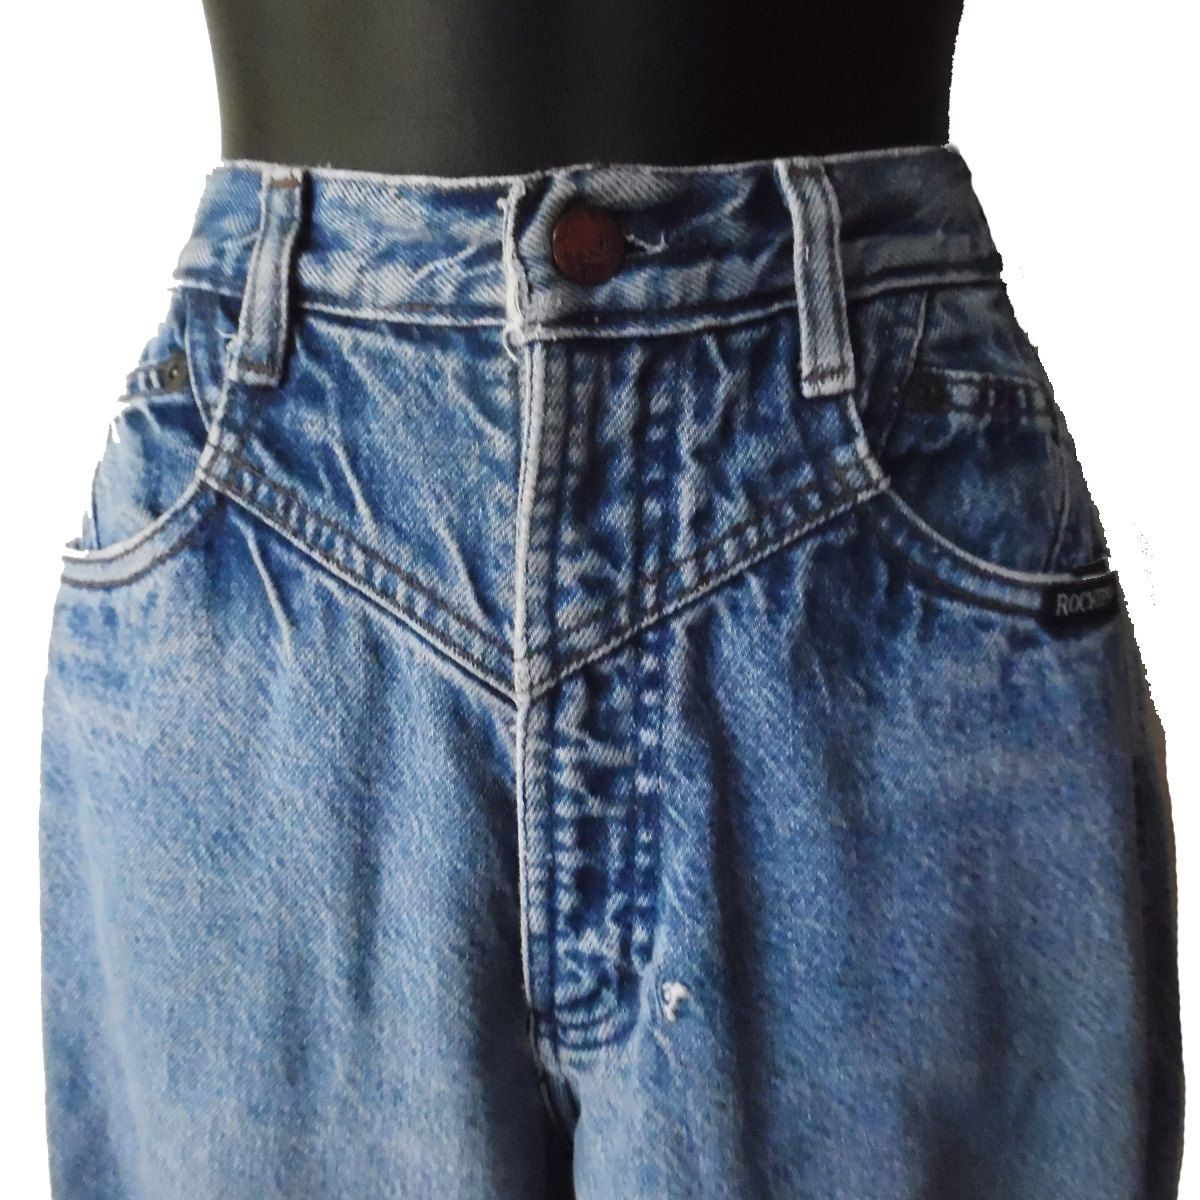 24c1b957f6 Women's Vintage 80s High Waisted Denim Rocky Mountain Pleated Front Denim  Mom Jeans by SlowBurnThreads on Etsy